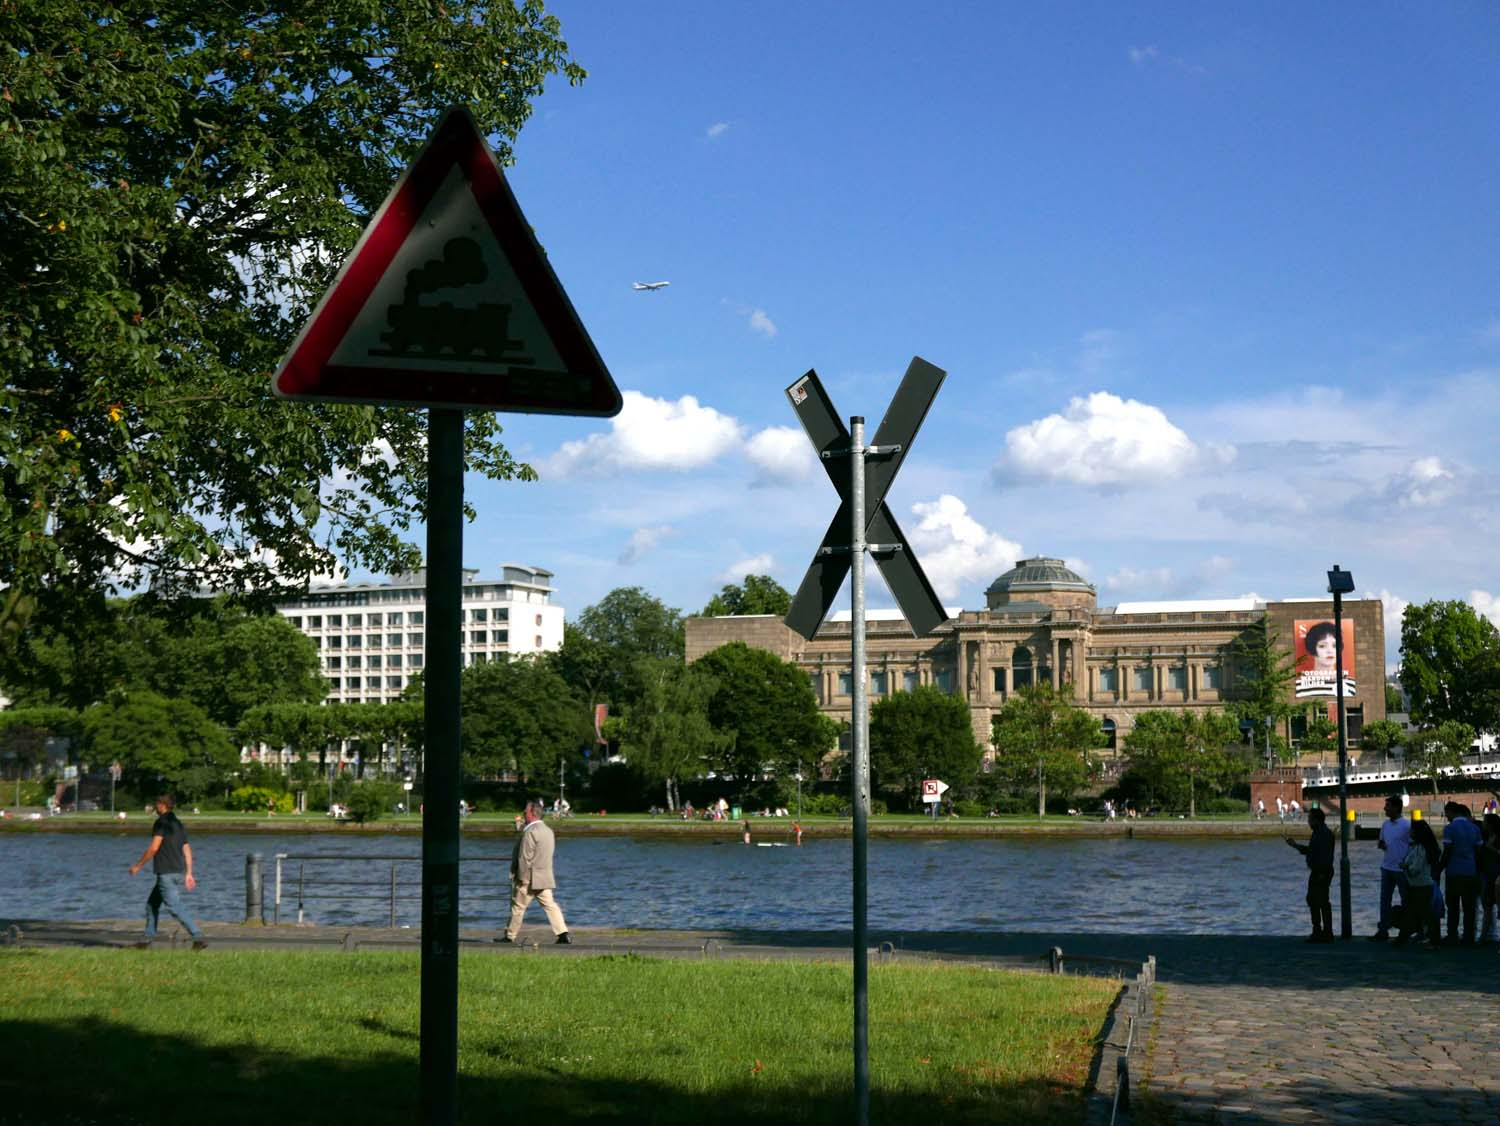 The Städel Museum from across the Main river